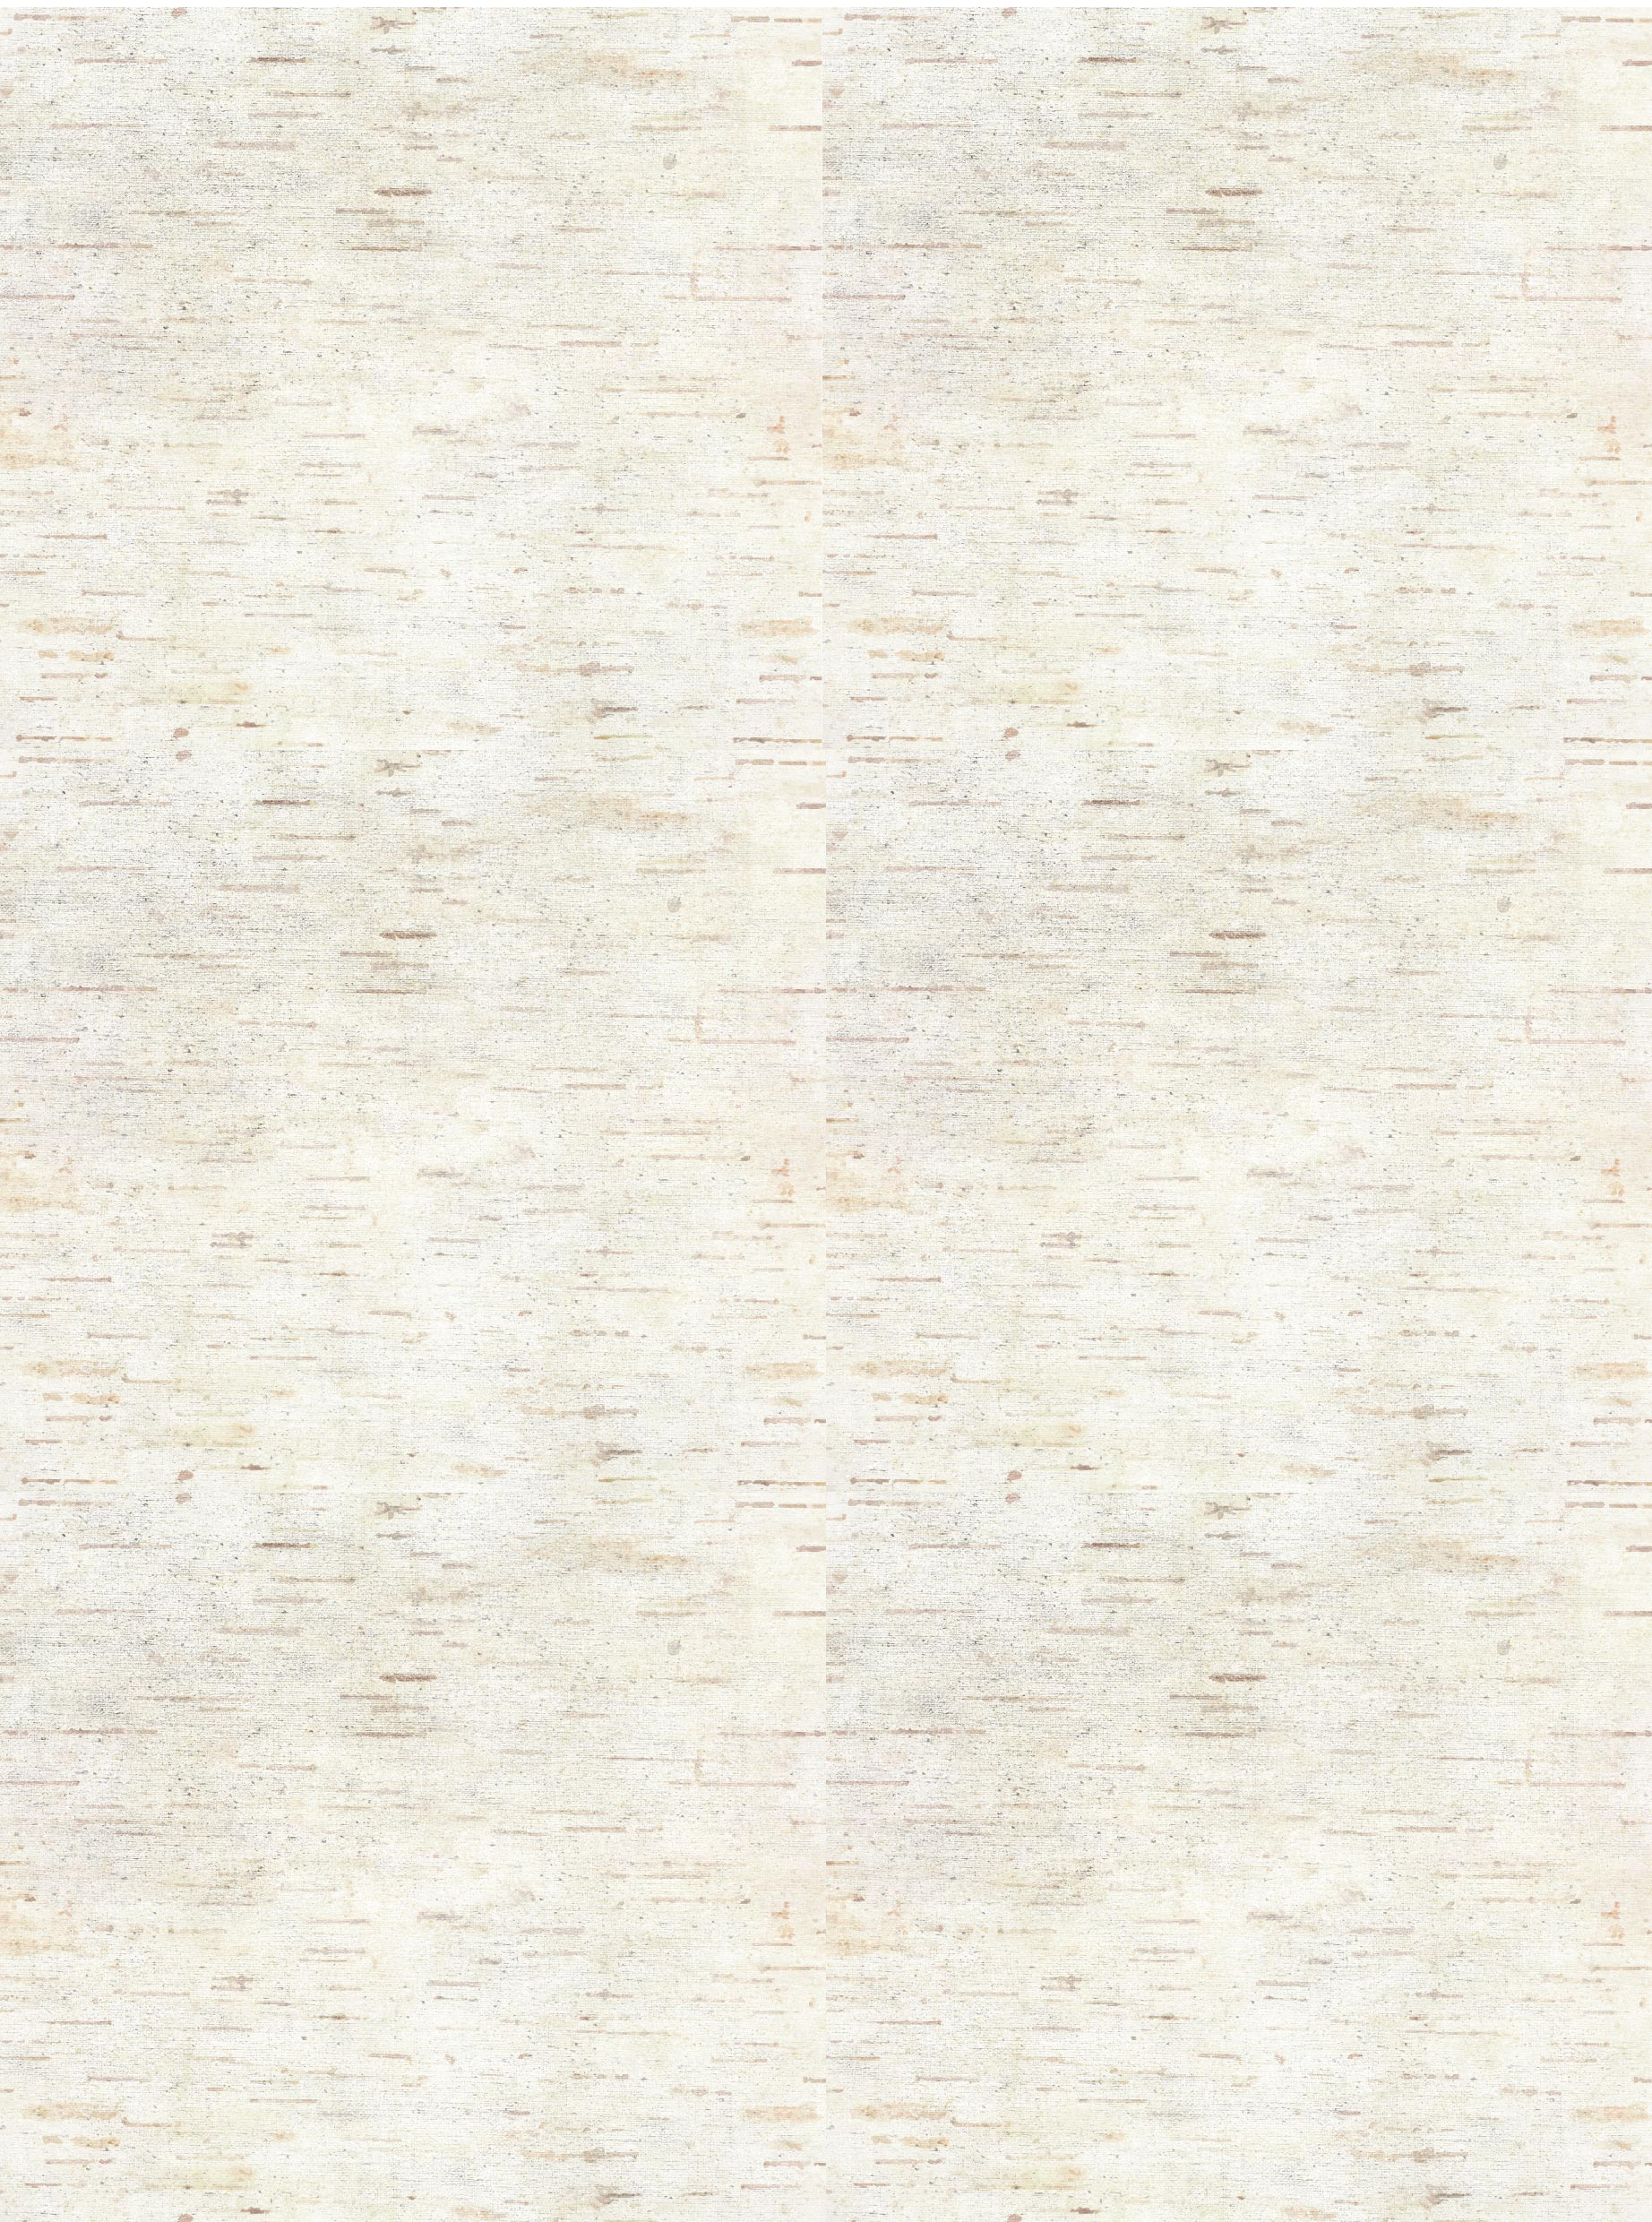 Background #1 (Birch Tree)